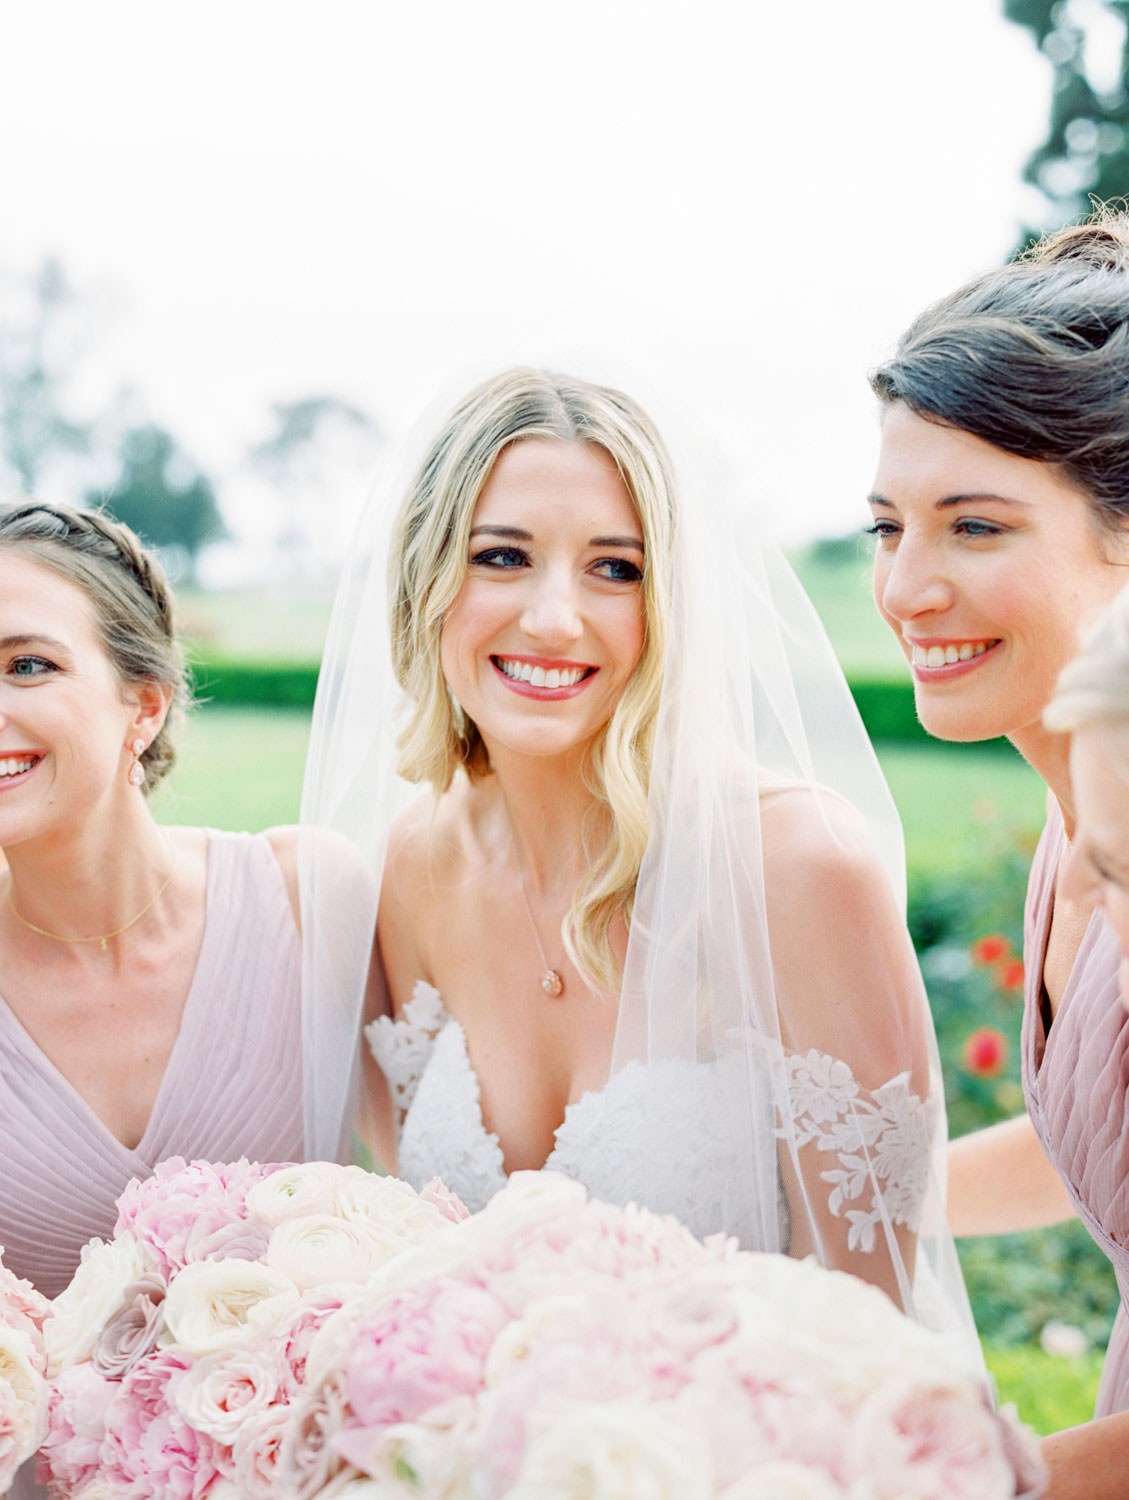 Bride in Pronovias off shoulder lace gown and long train and veil holding a bouquet with blush, lavender, and ivory roses, bridesmaids in lavender dresses, Lodge at Torrey Pines wedding, film photography by Cavin Elizabeth Photography